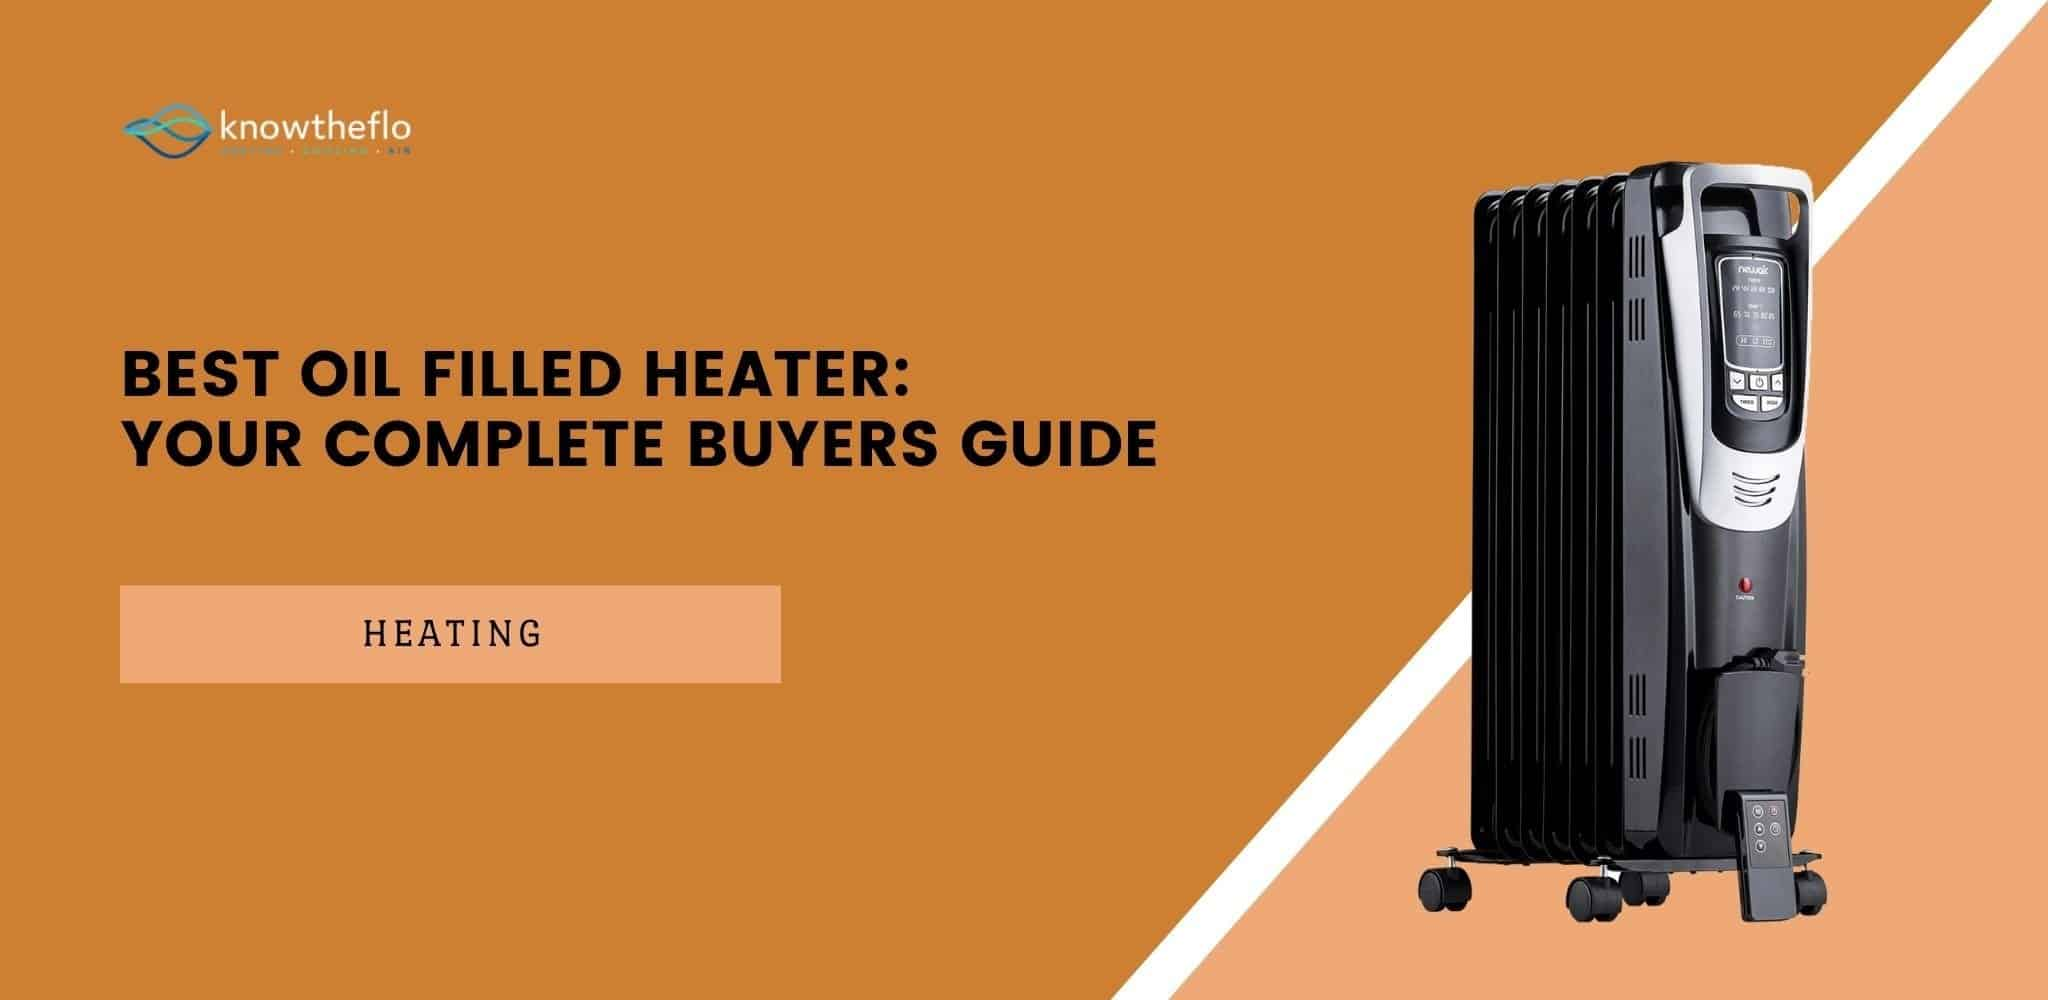 Best Oil Filled Heater - Your Complete Buyers Guide